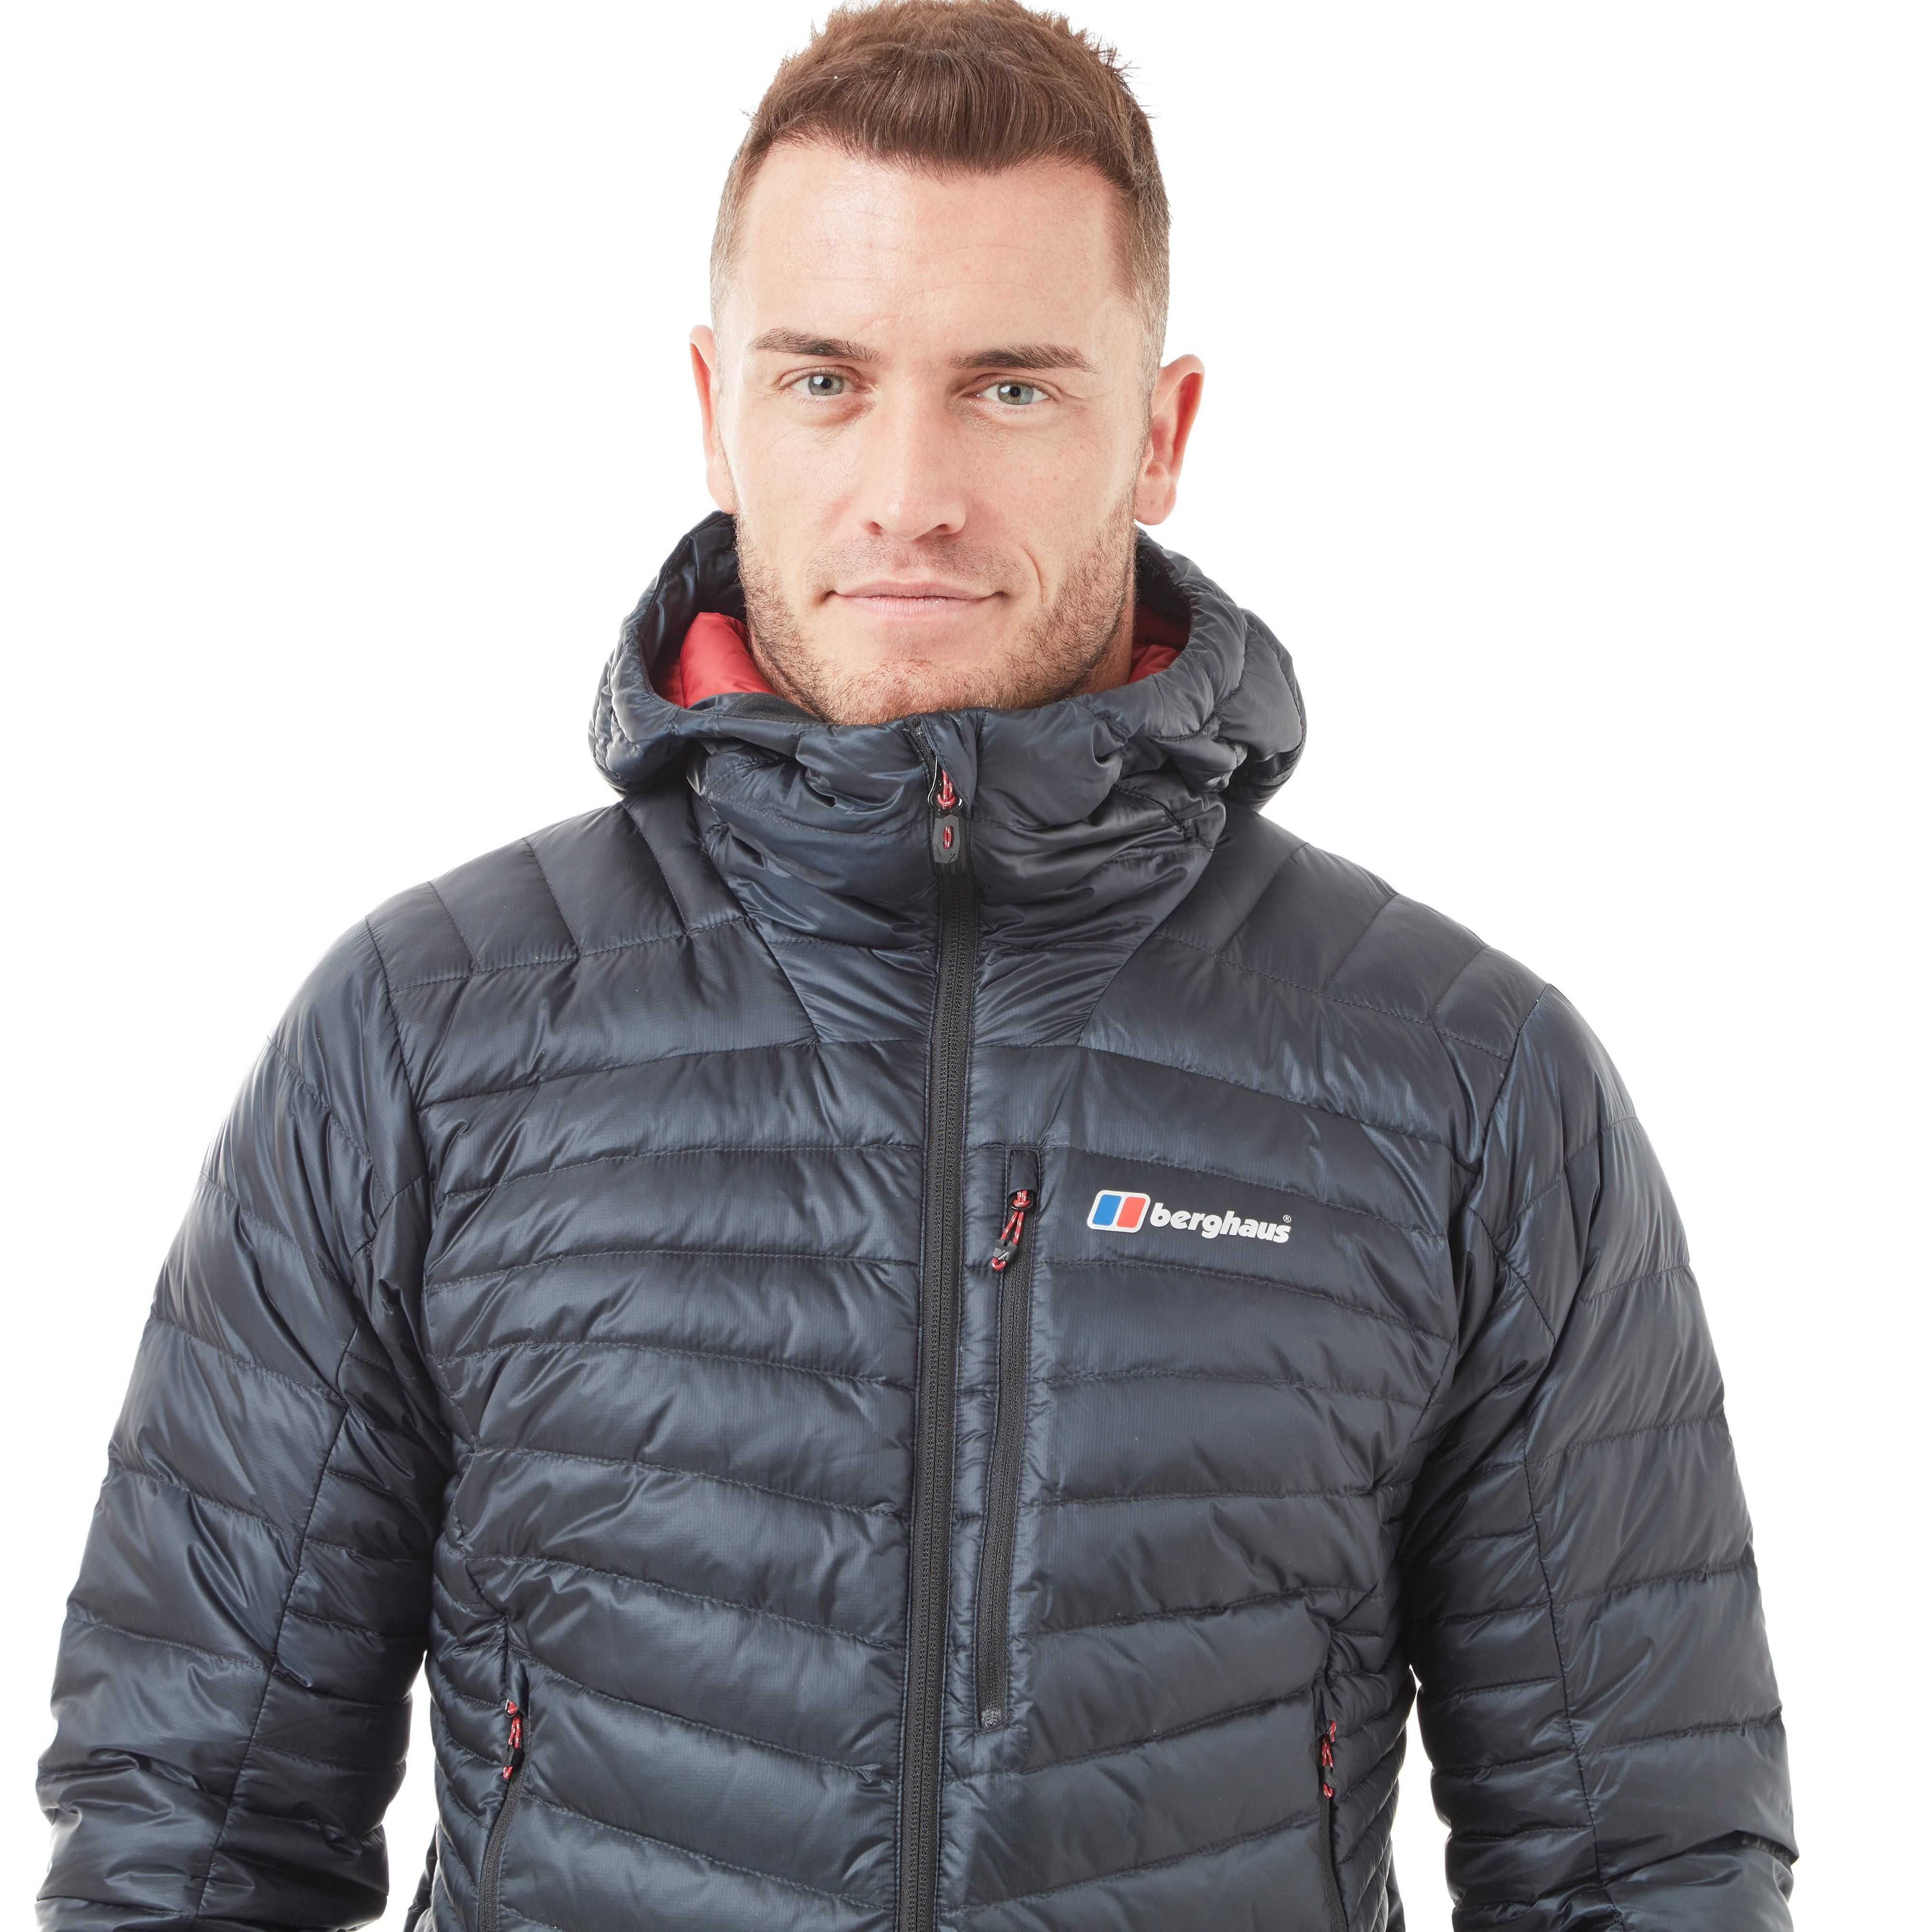 Berghaus Extrem Micro 2.0 Insulated Men's Down Jacket